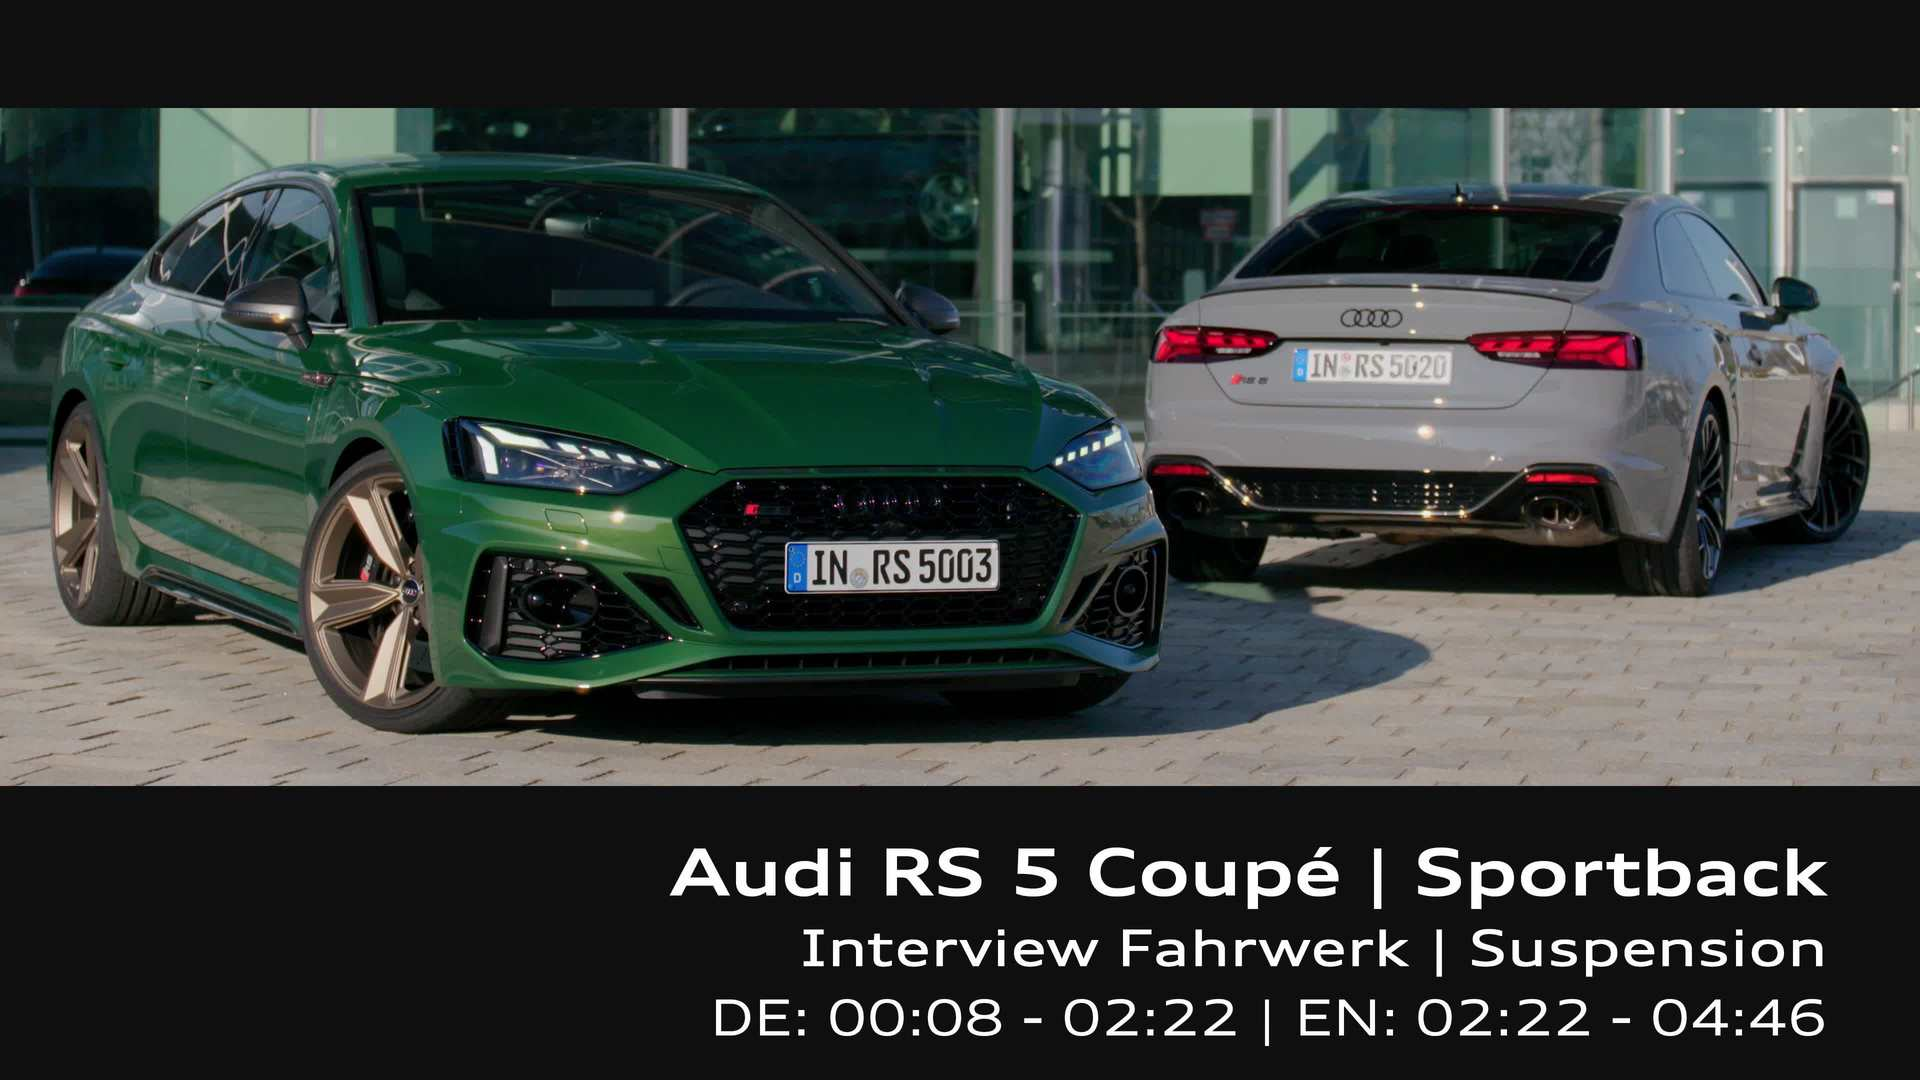 Footage: Audi RS 5 – Suspension